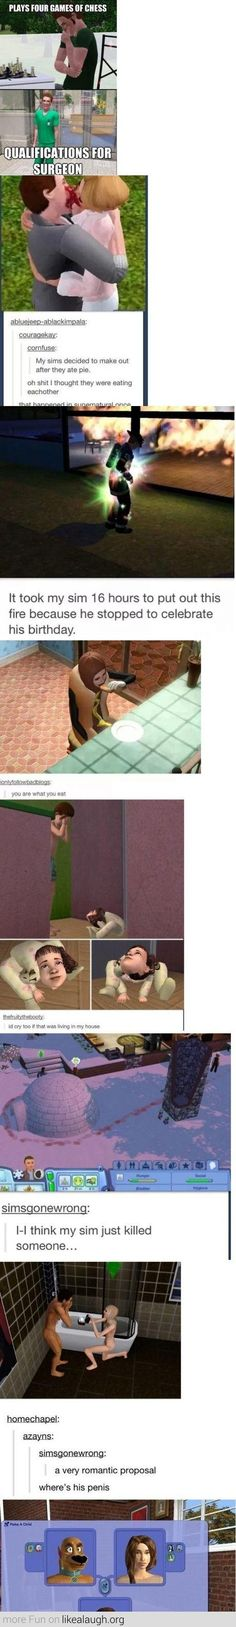 I love the sims. I've done the pie one. Its even more funny watching it.